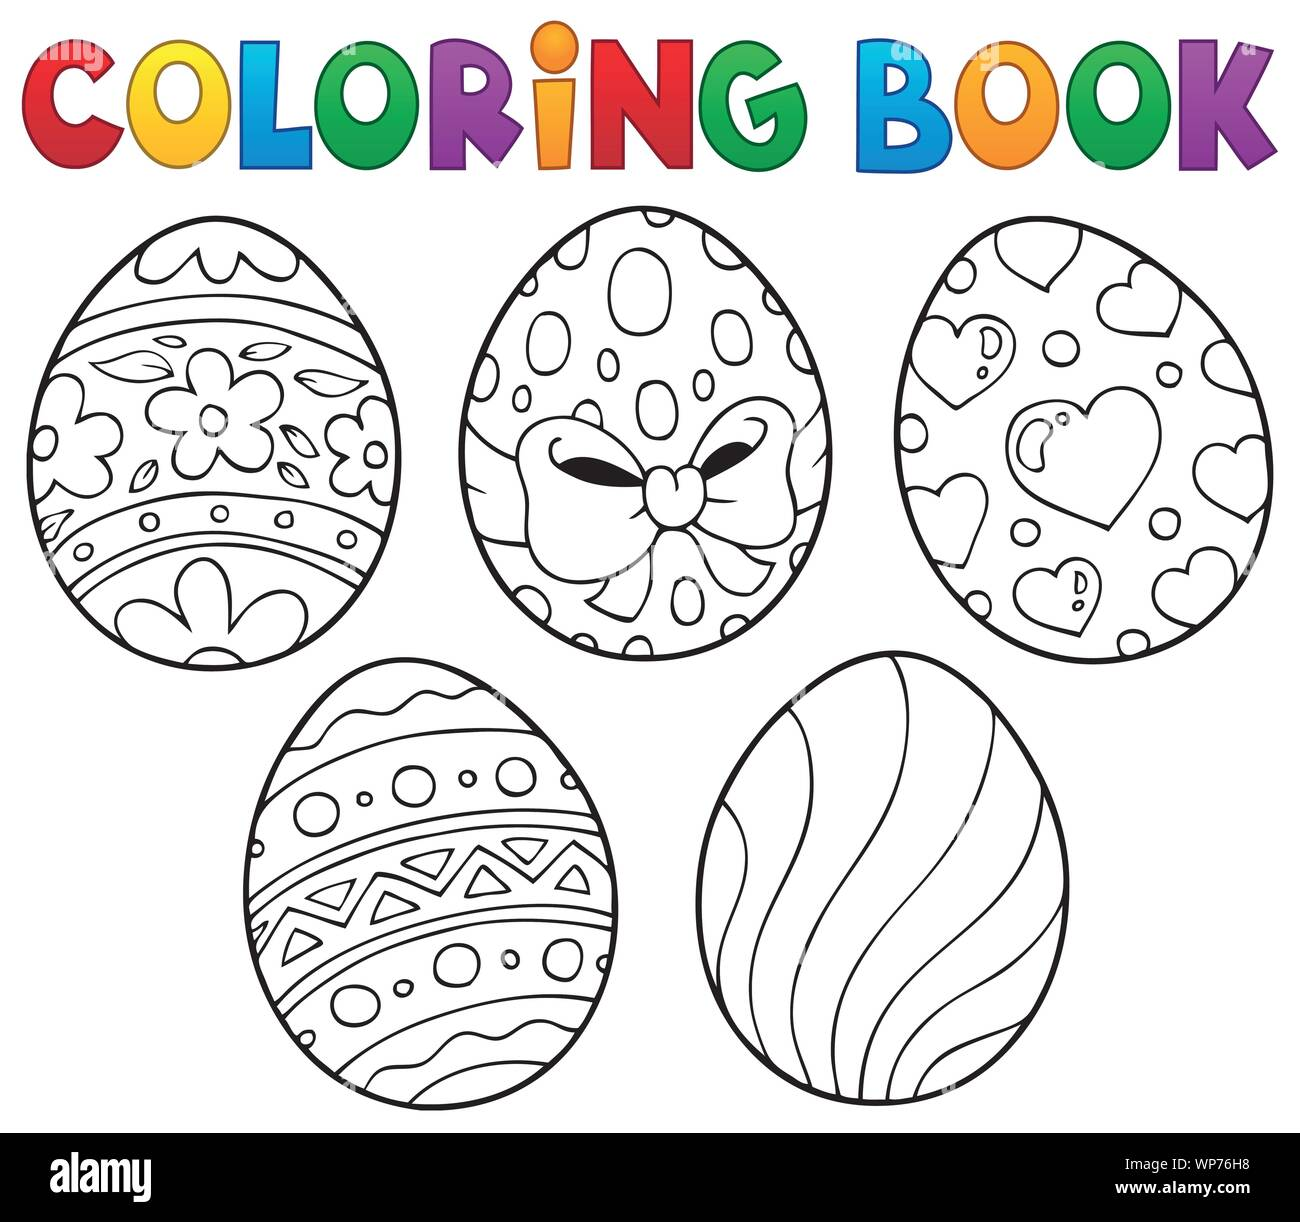 Coloring book Easter eggs theme 9 Stock Vector Image & Art - Alamy